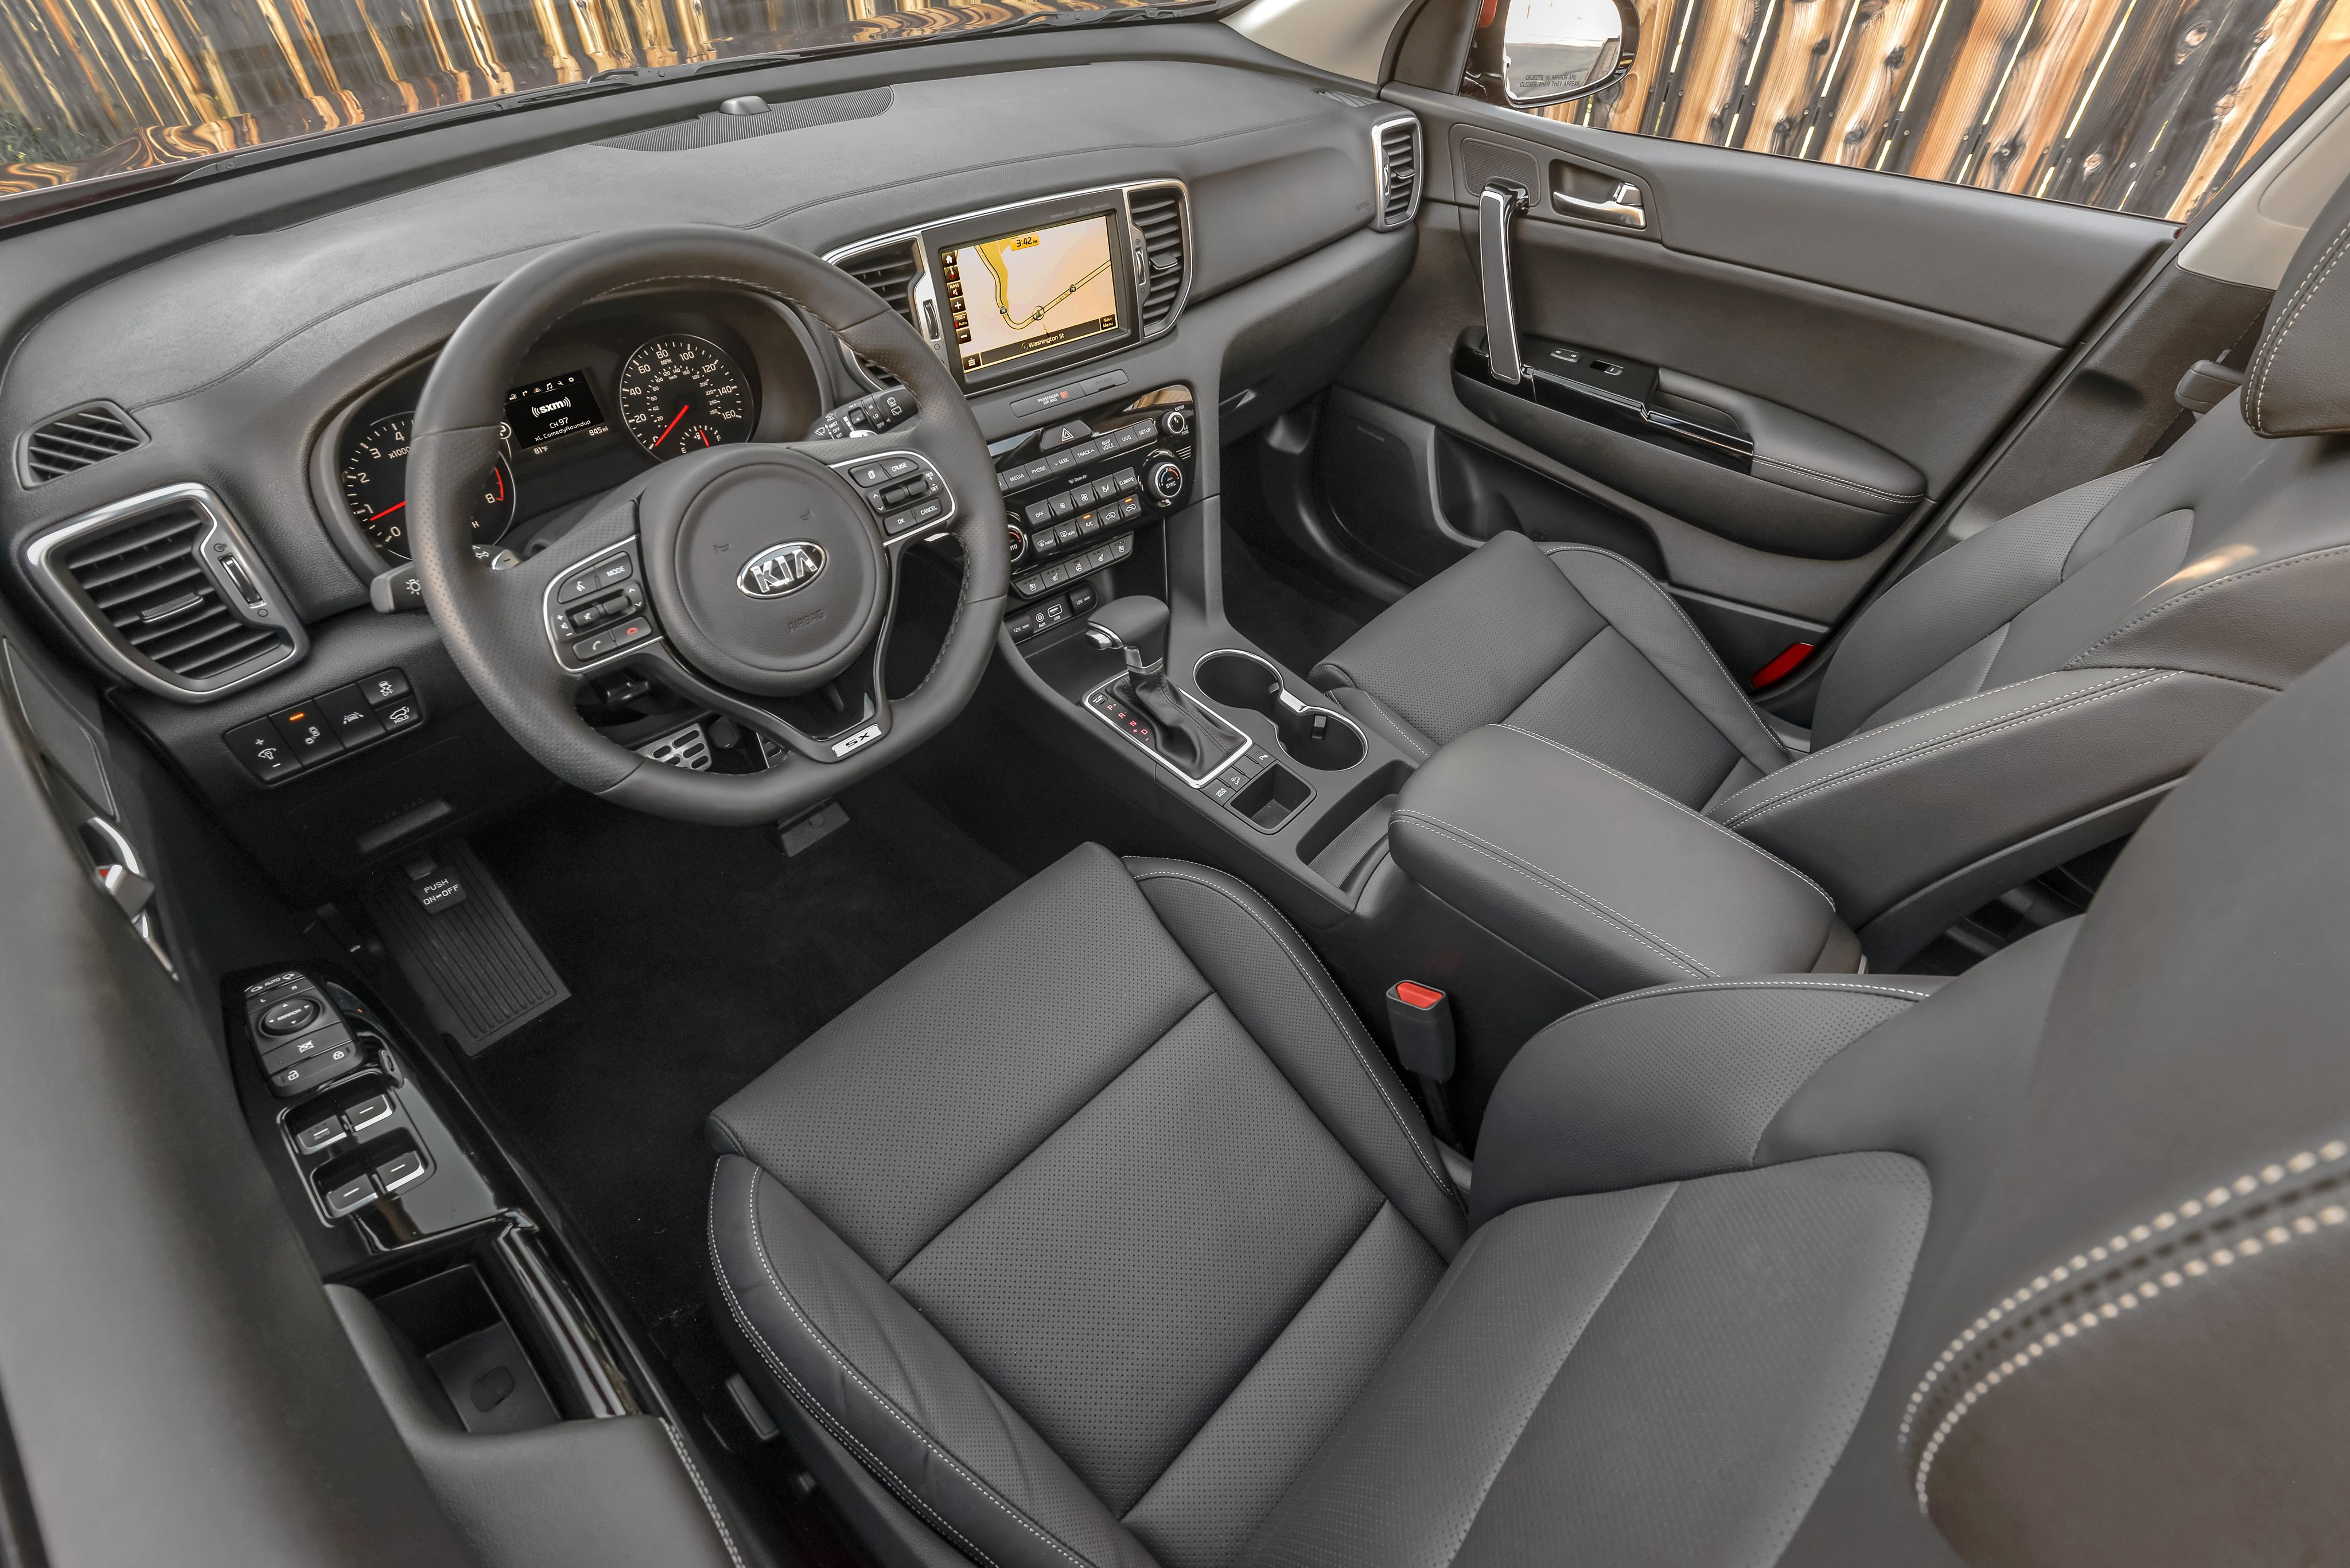 2017 kia sportage sx interior 2017 kia sportage sx us. Black Bedroom Furniture Sets. Home Design Ideas